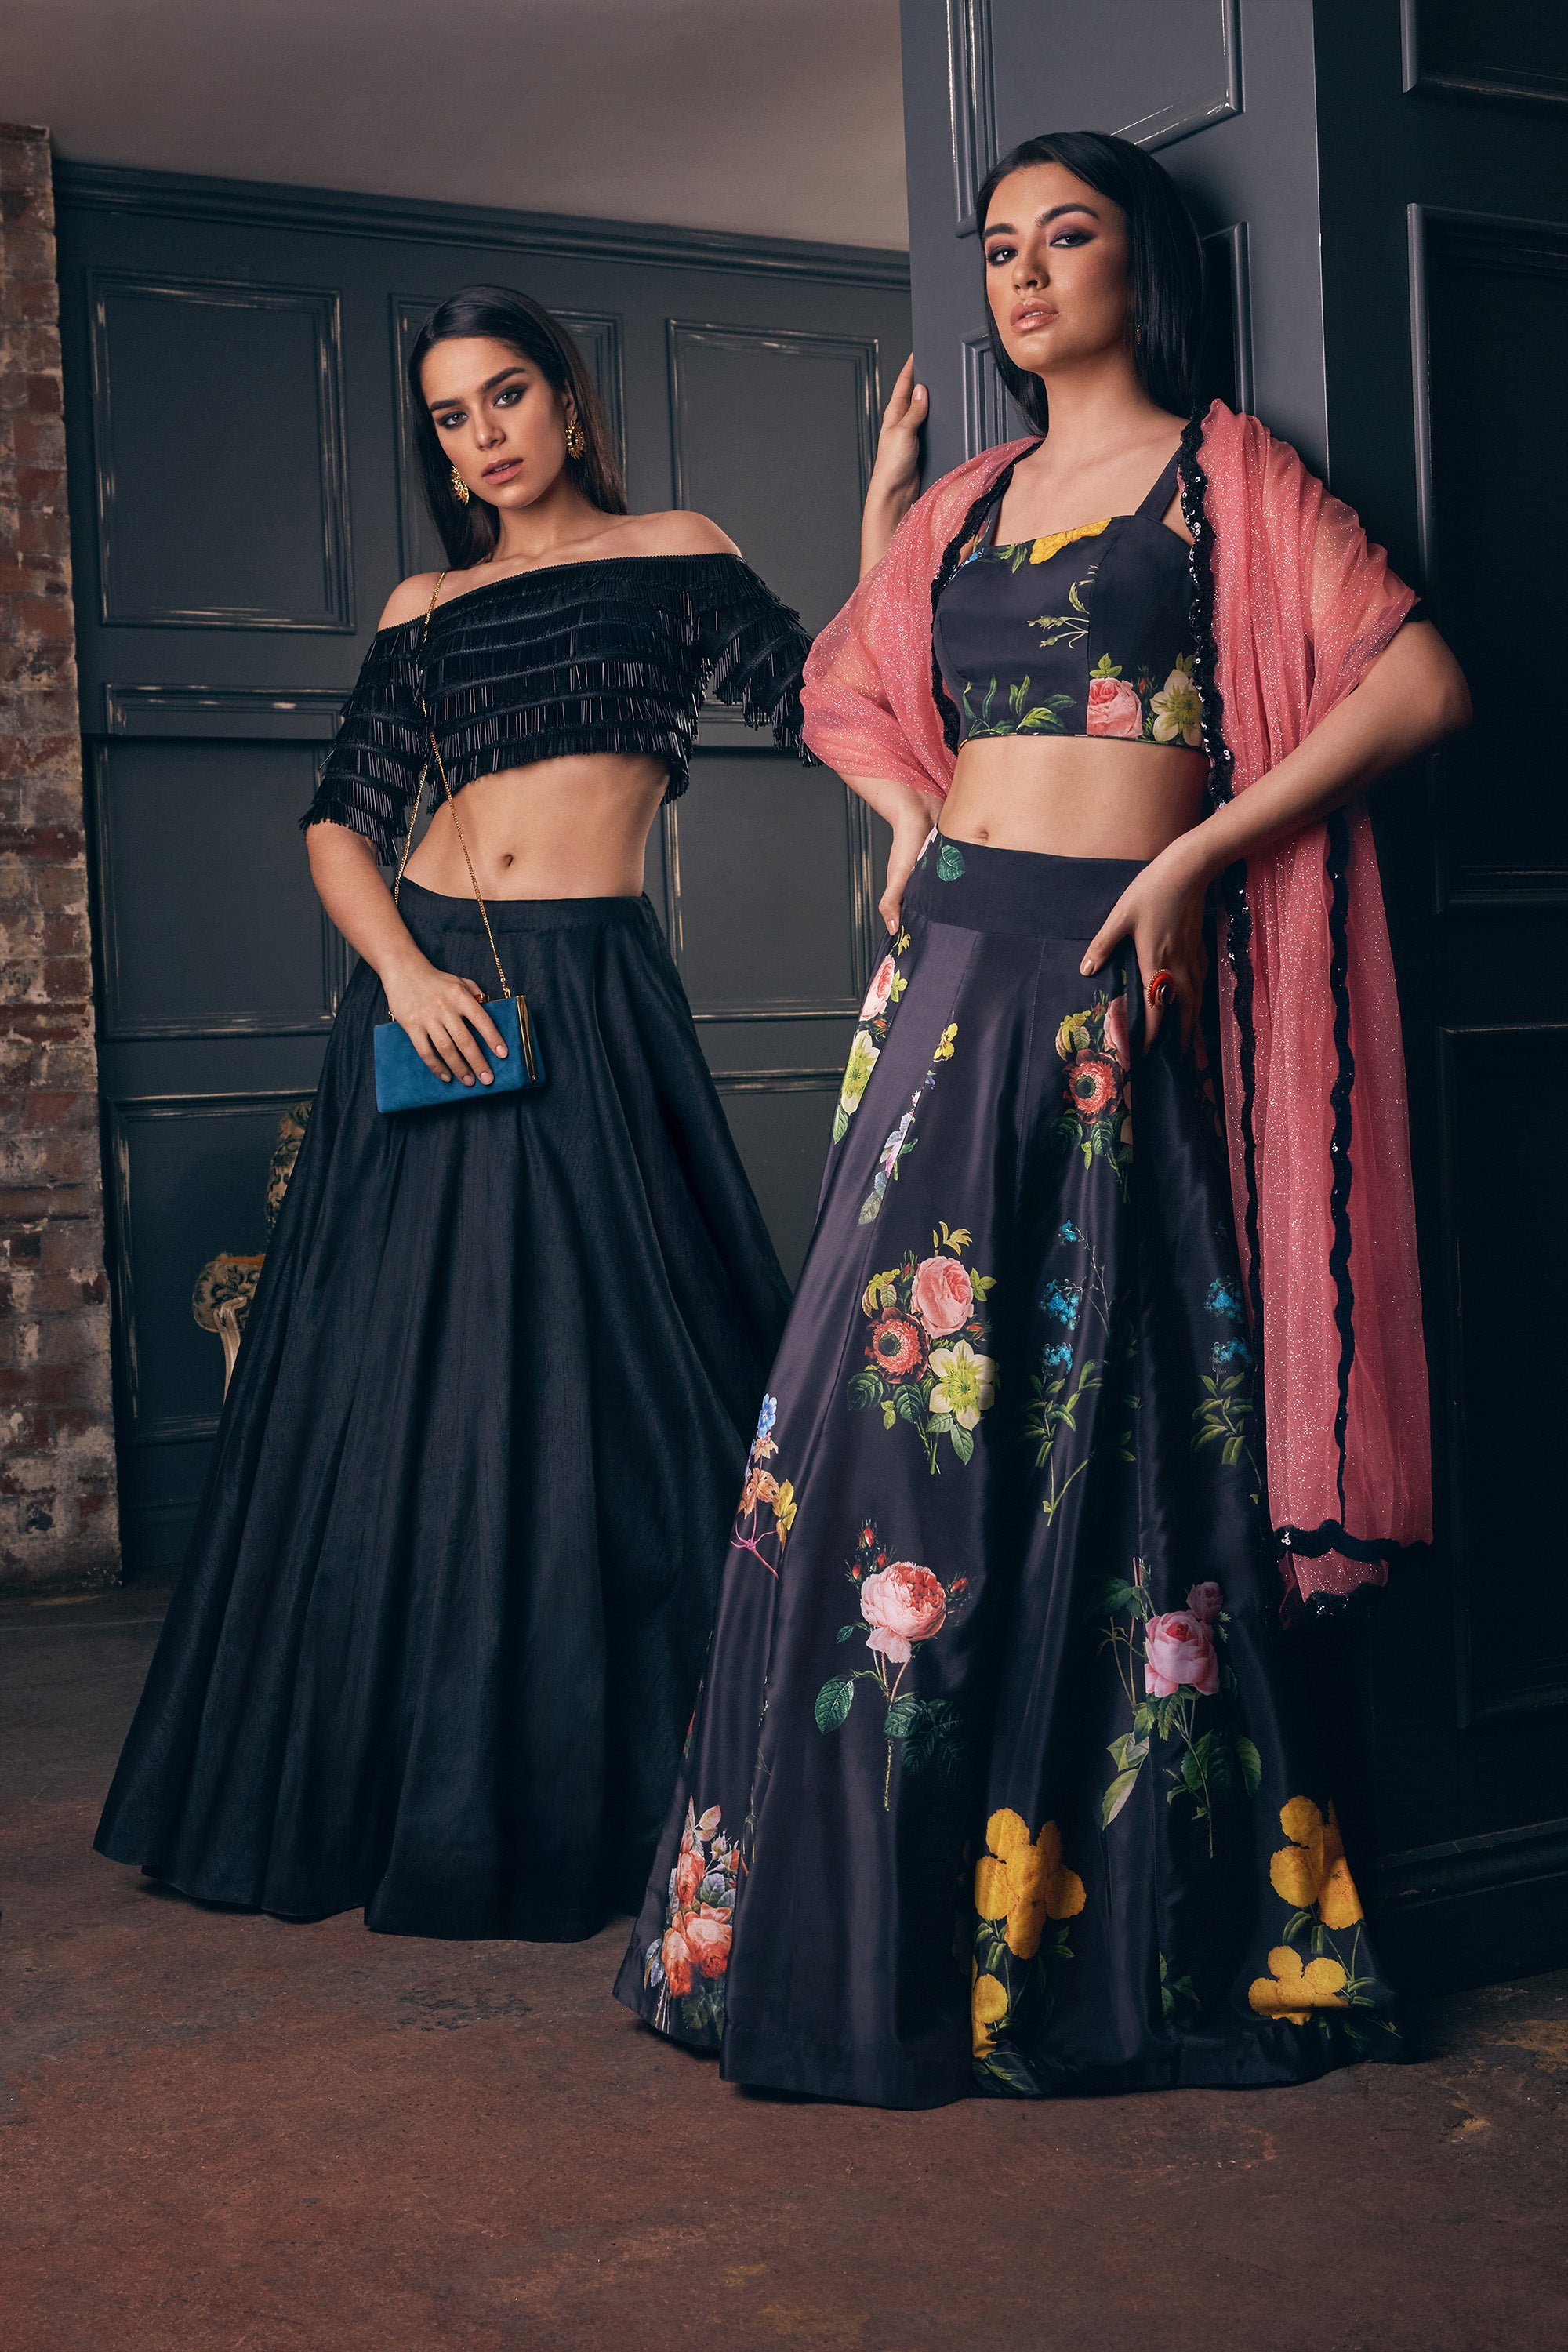 Black Floral Print Lehenga Set With Coral Dupatta SIDE